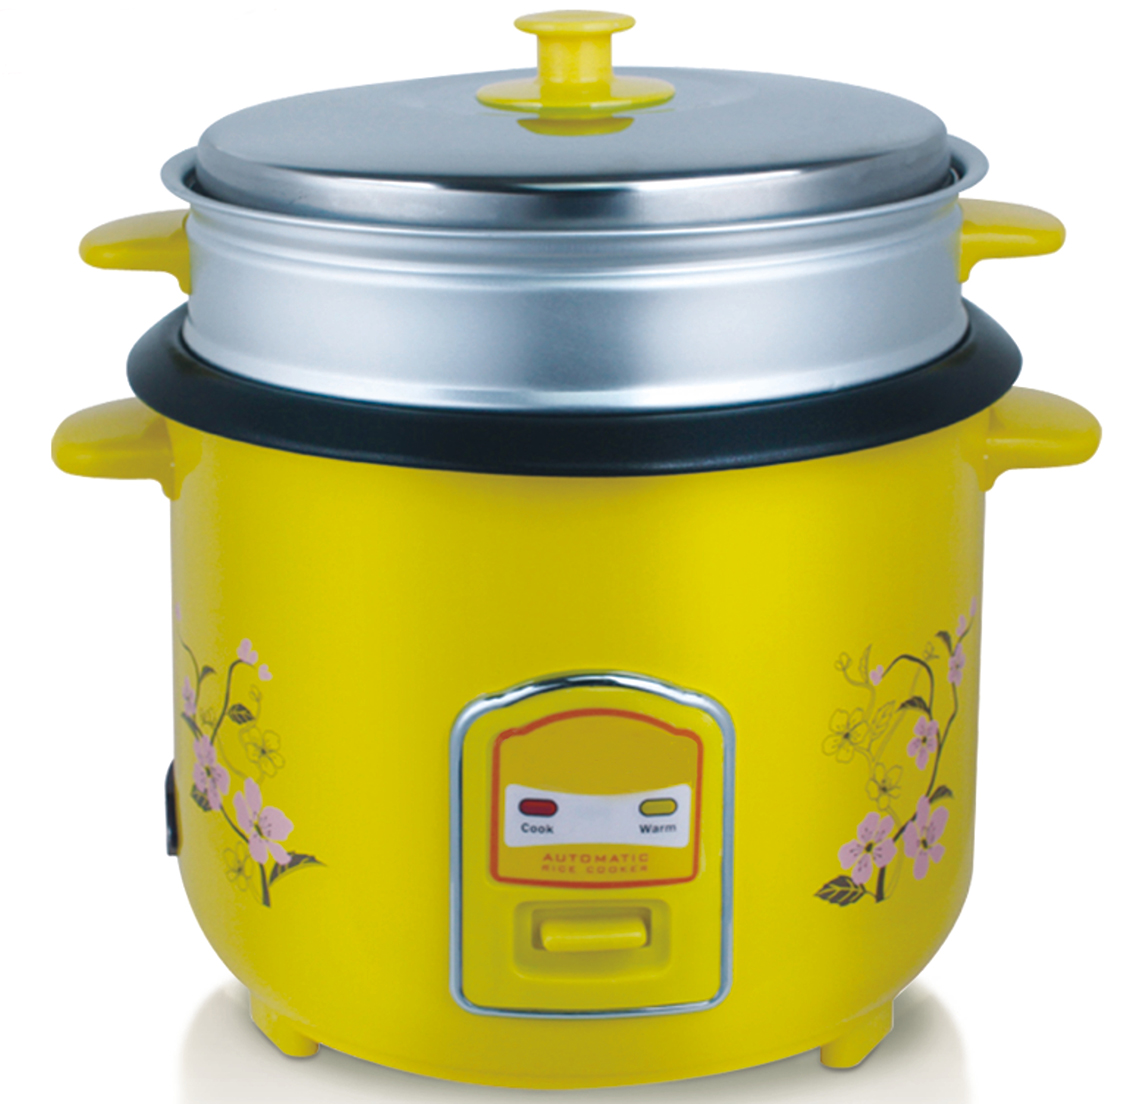 Straight type rice cooker TPZB40-02